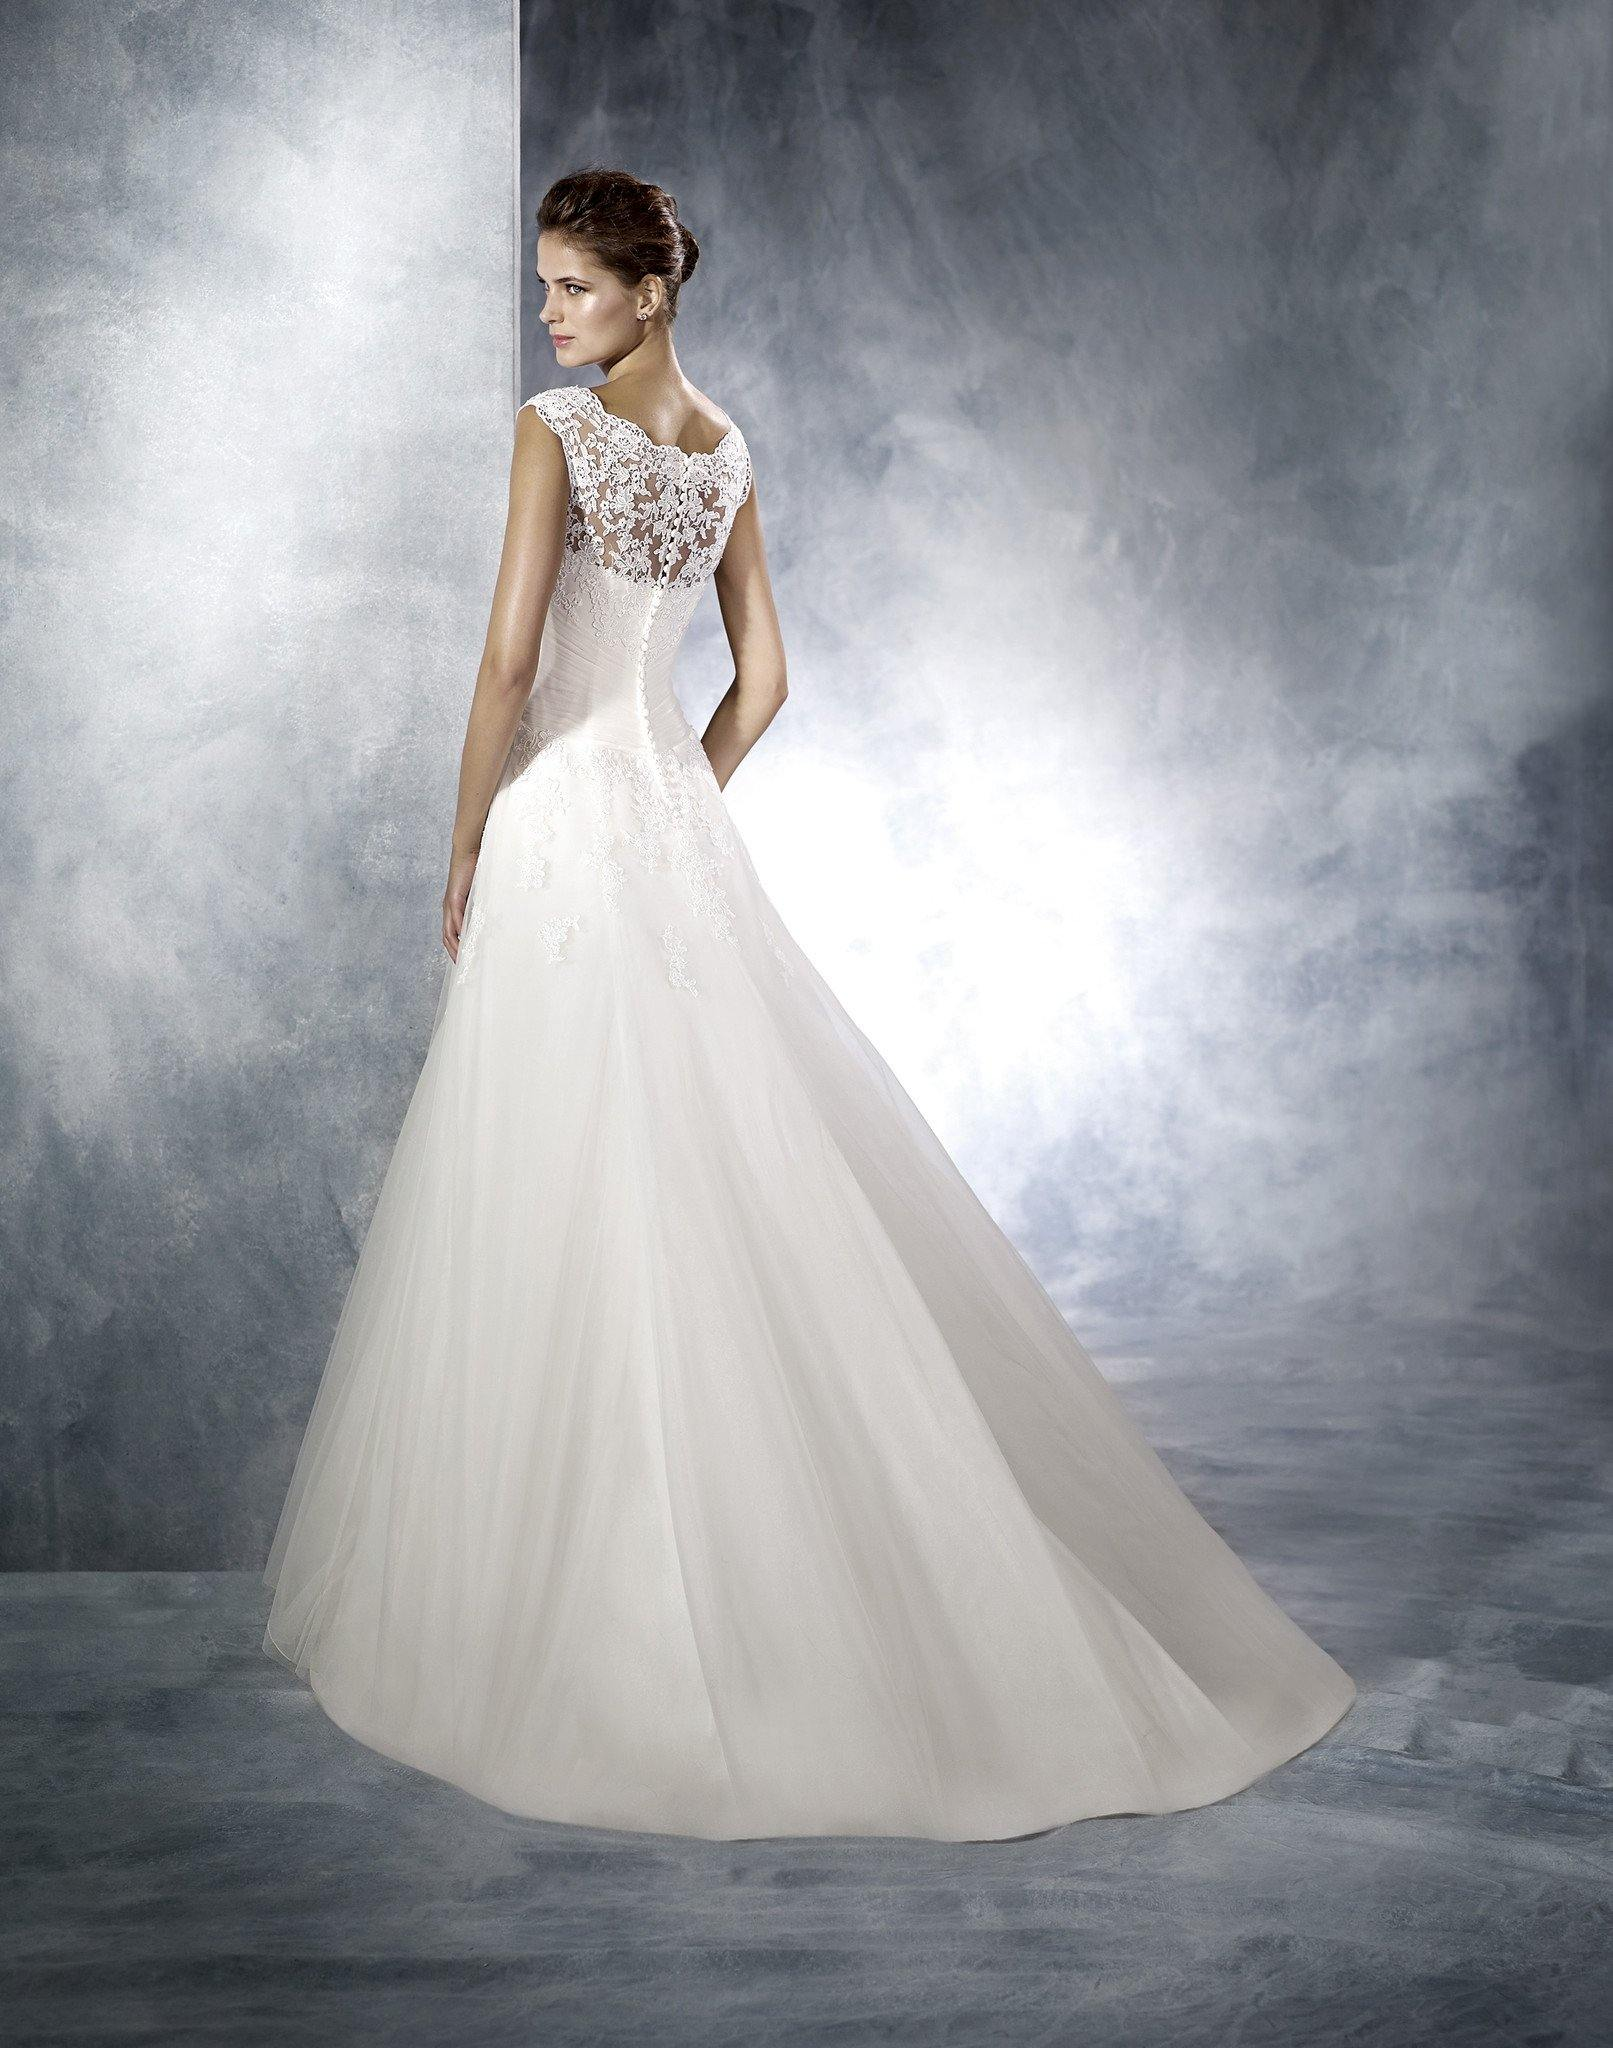 Pronovia White One - Daila Sample €500 - Elliott Chambers    - Bridal -  Debs Dresses -  Communion dresses